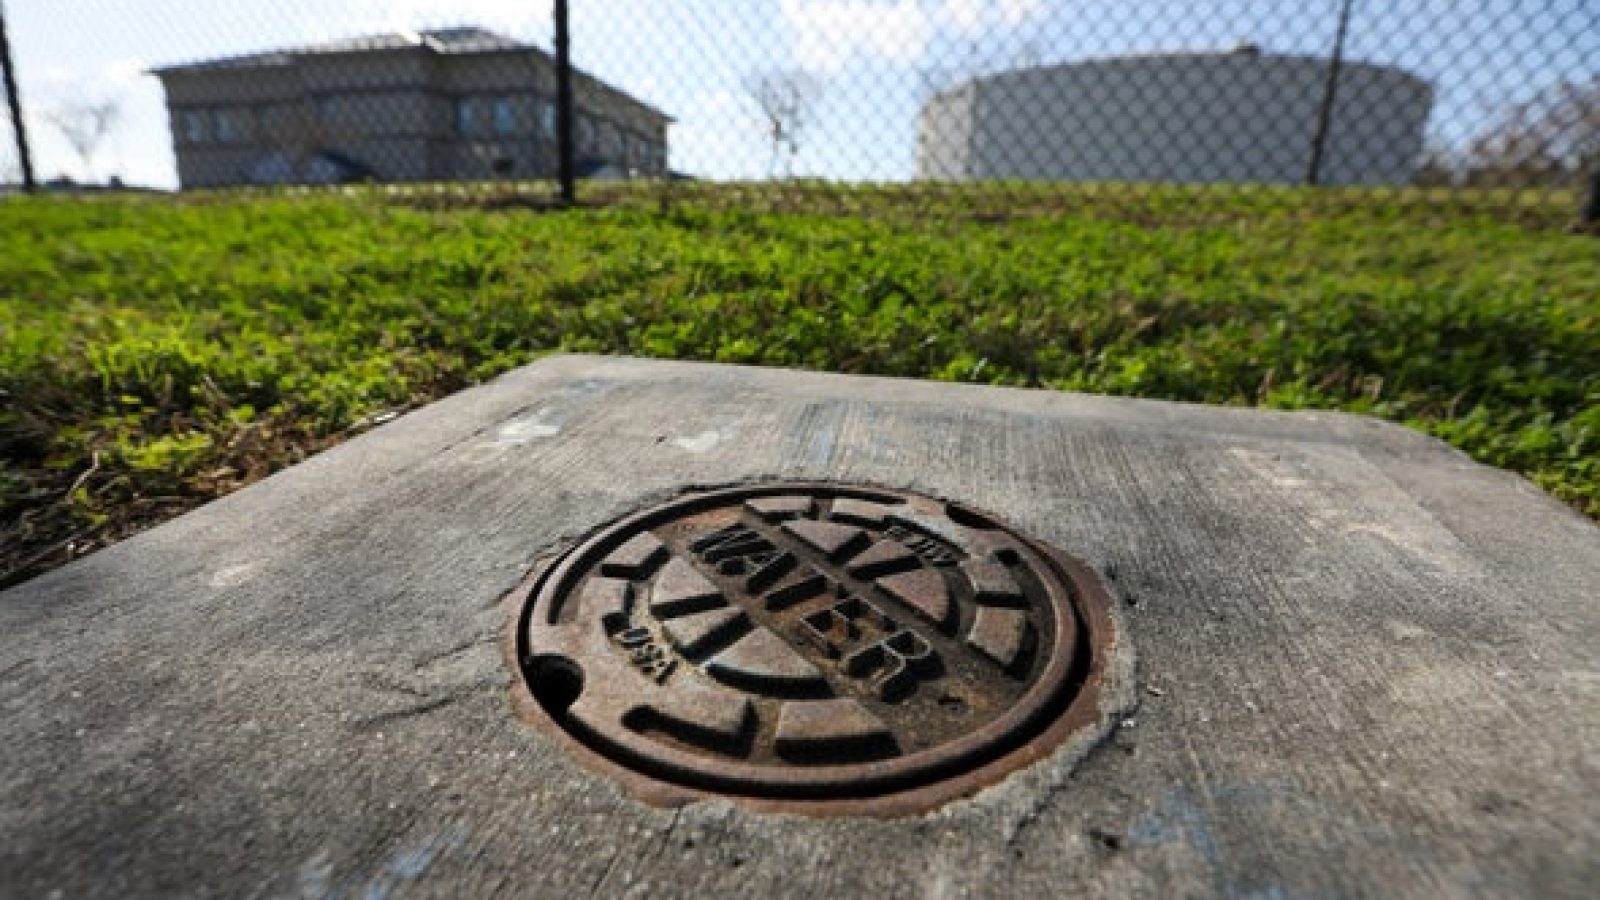 A photo of a manhole that says